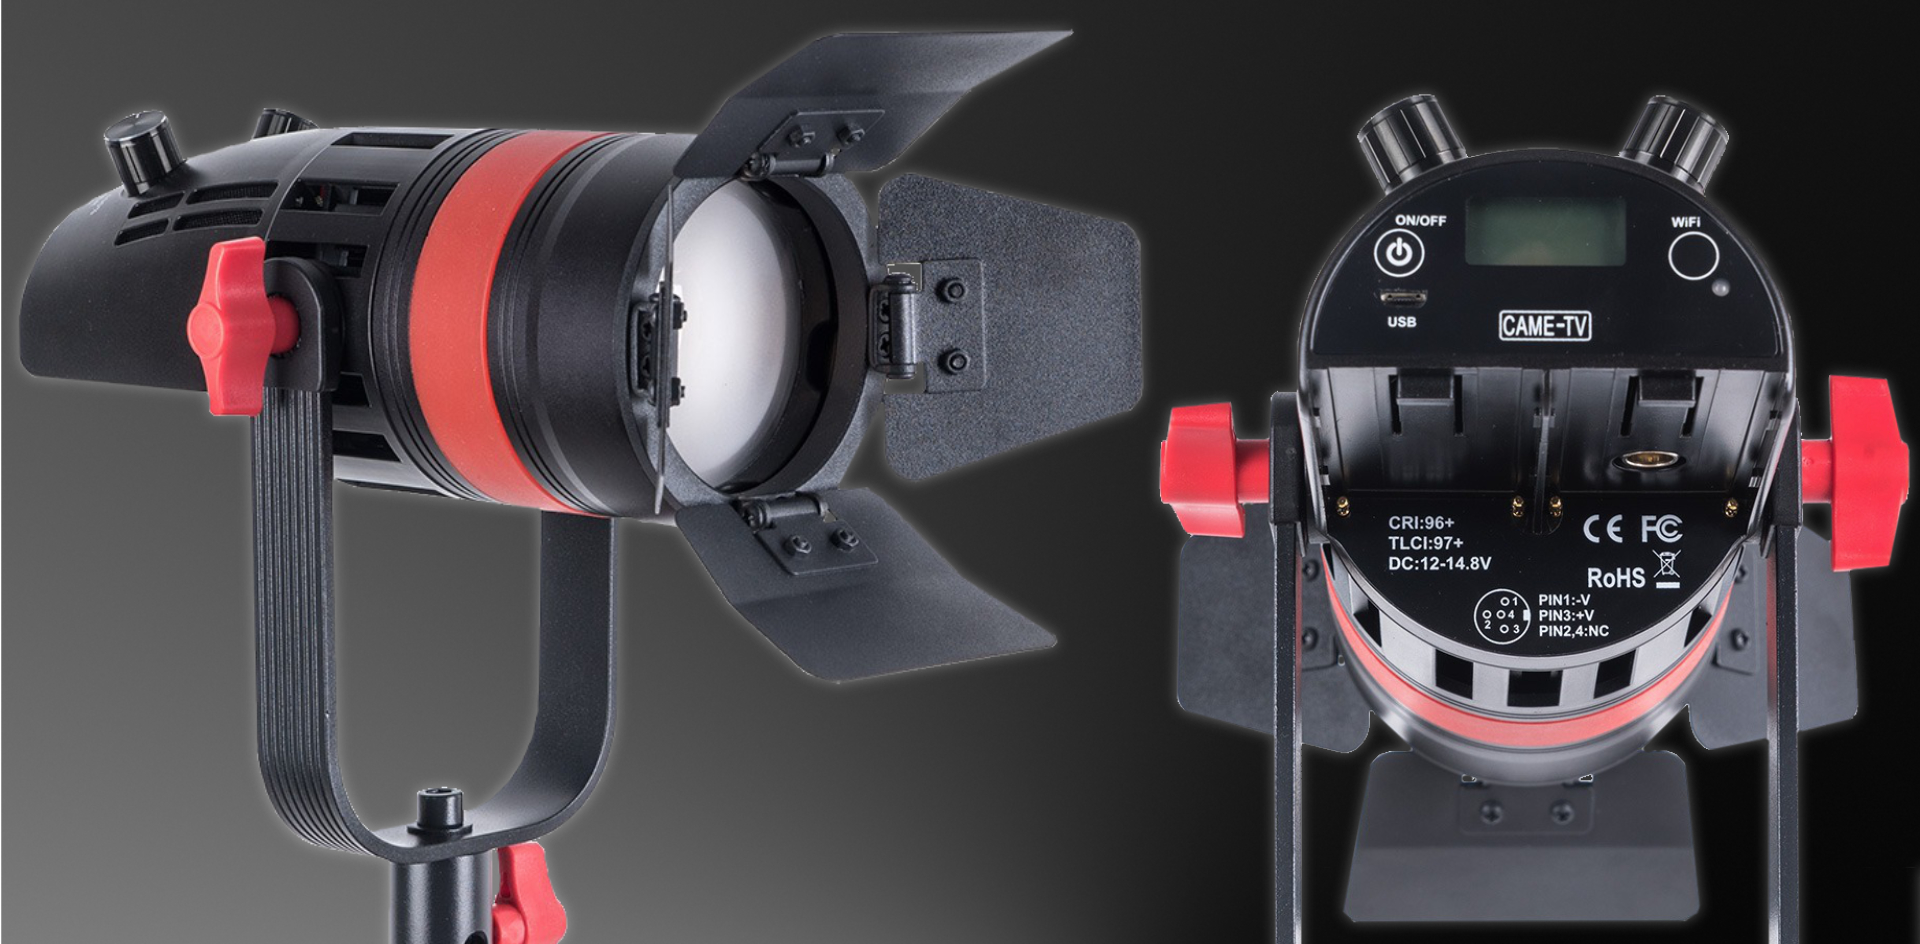 Presentaron la nueva Boltzen Q-55S Mini Bi-Color Fresnel LED de CAME-TV